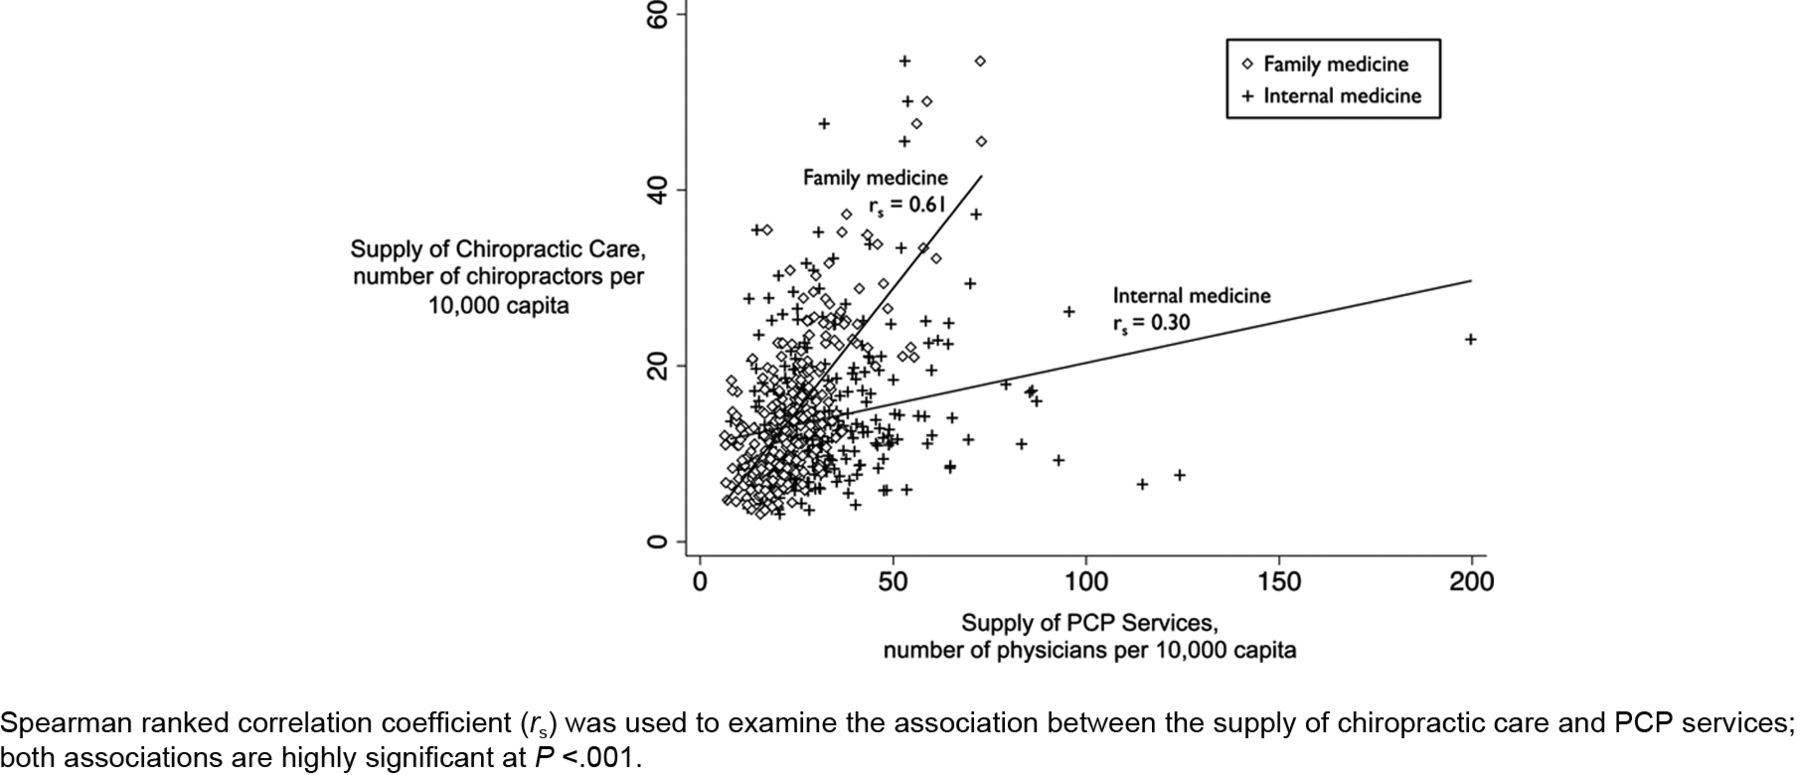 Regional Supply of Chiropractic Care and Visits to Primary Care